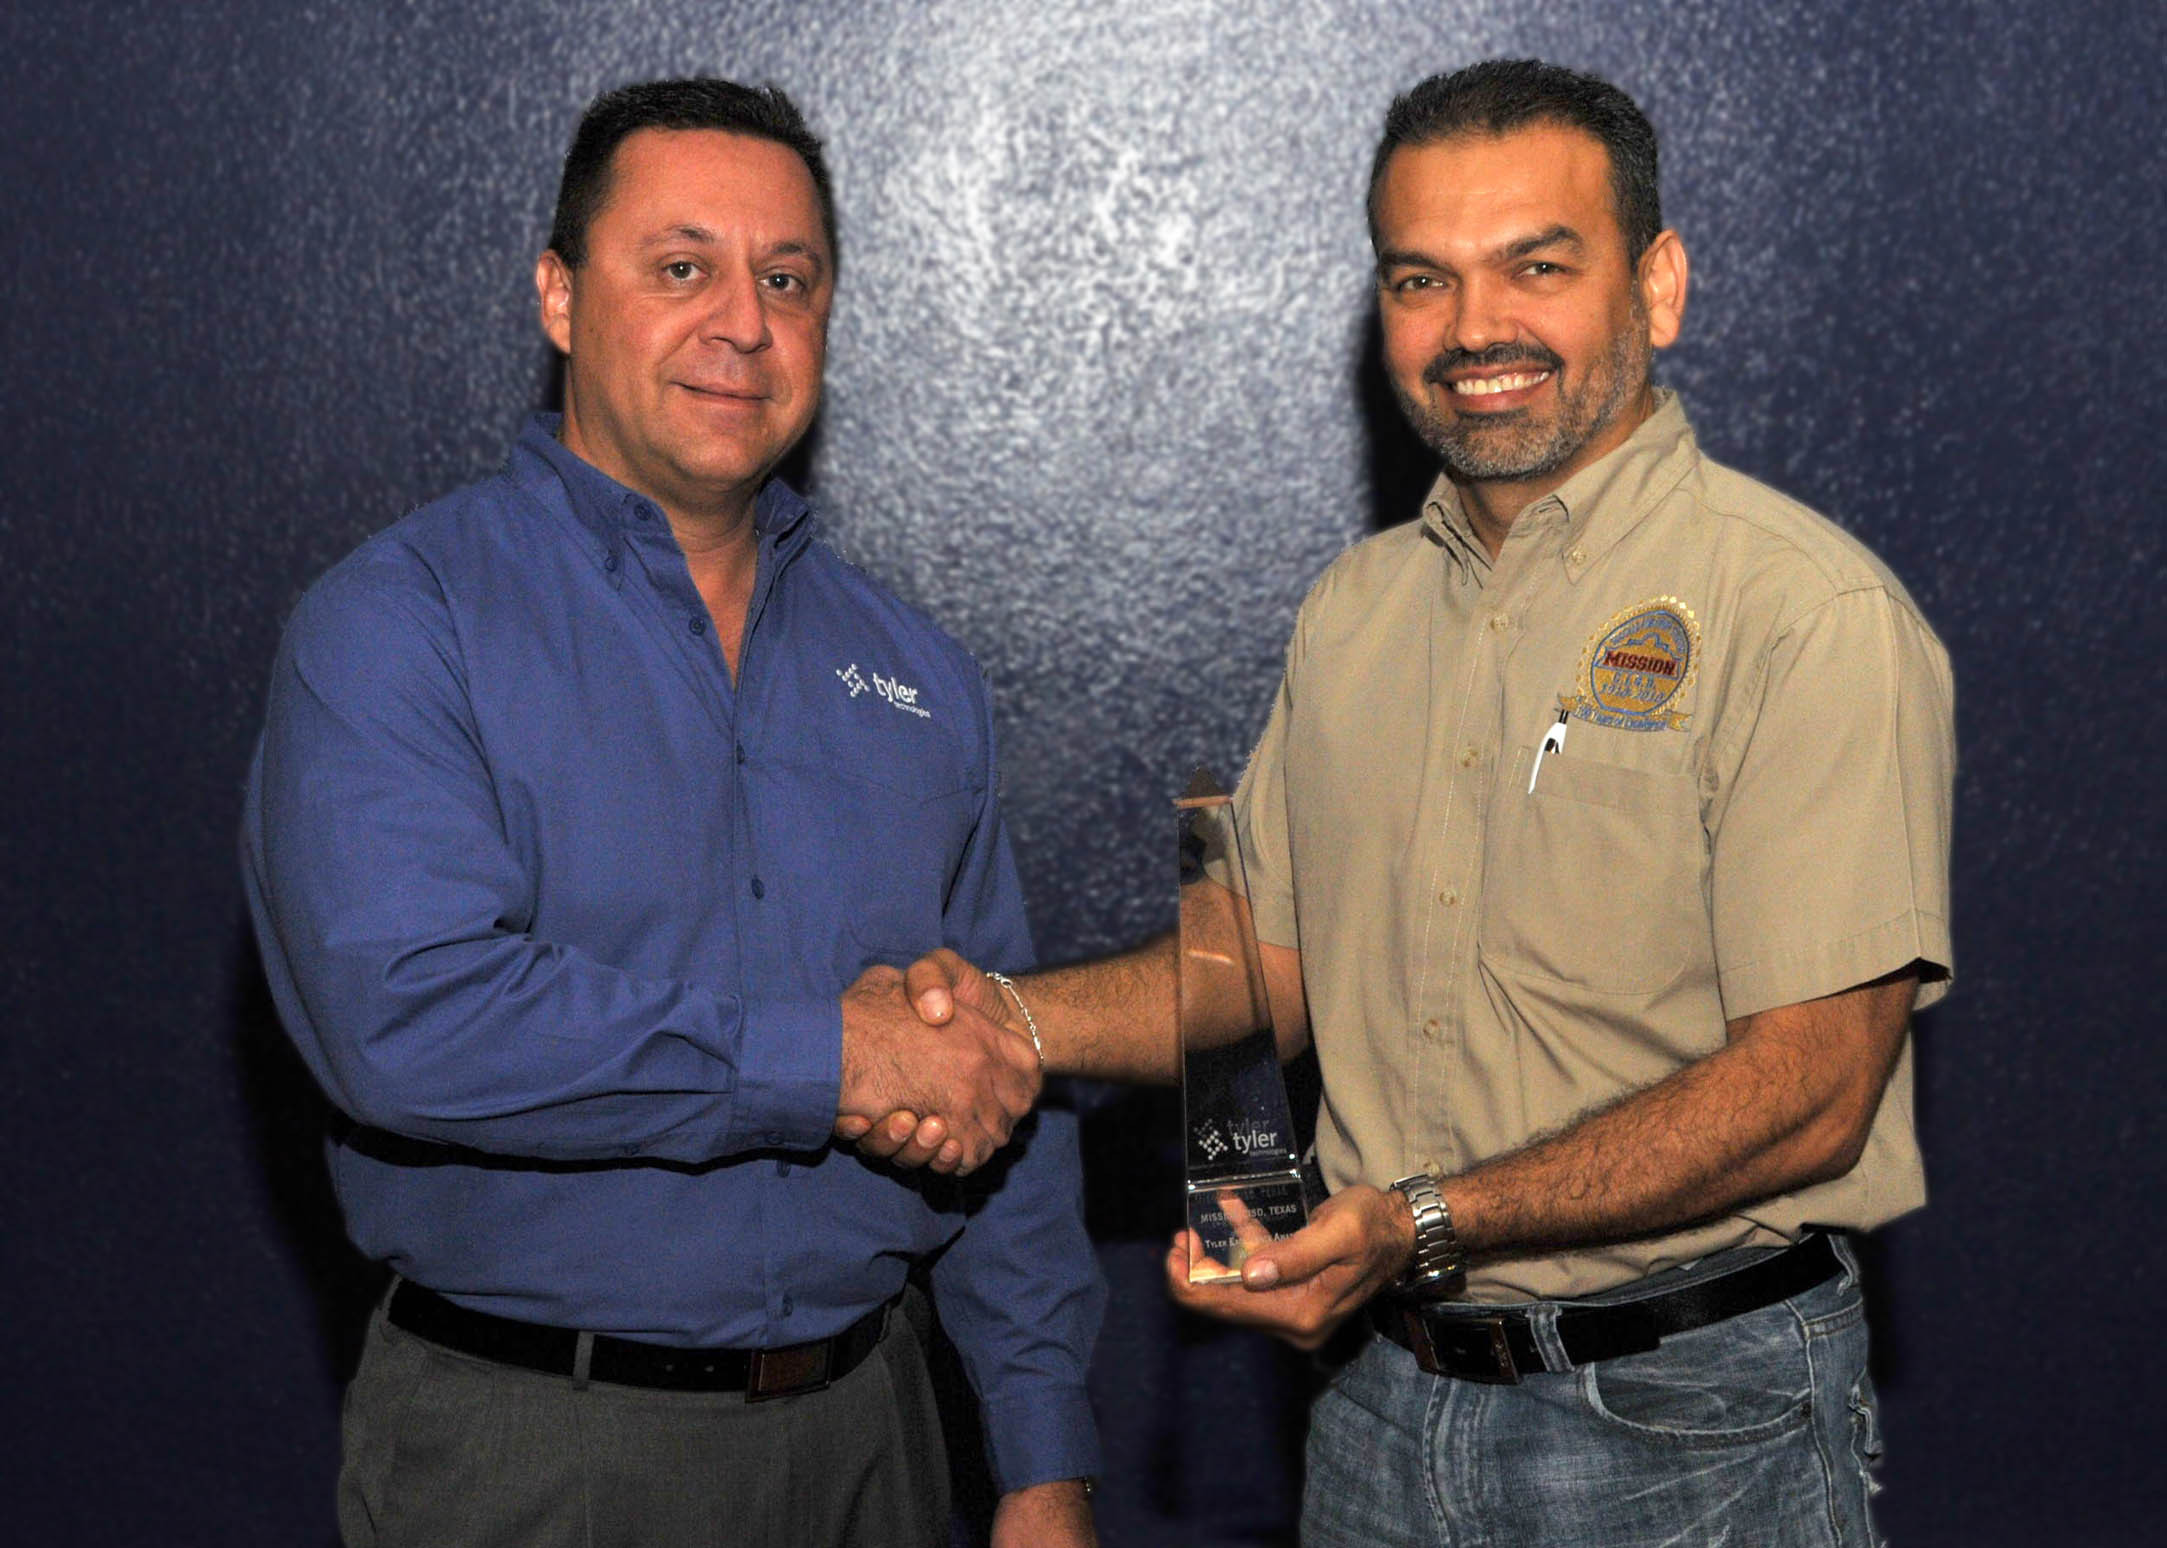 Jorge Cavazos, administrator for information systems at Mission Consolidated Independent School District, accepts a Tyler Excellence Award from Nick Botonis, president of Tyler SIS. (Photo: Business Wire)